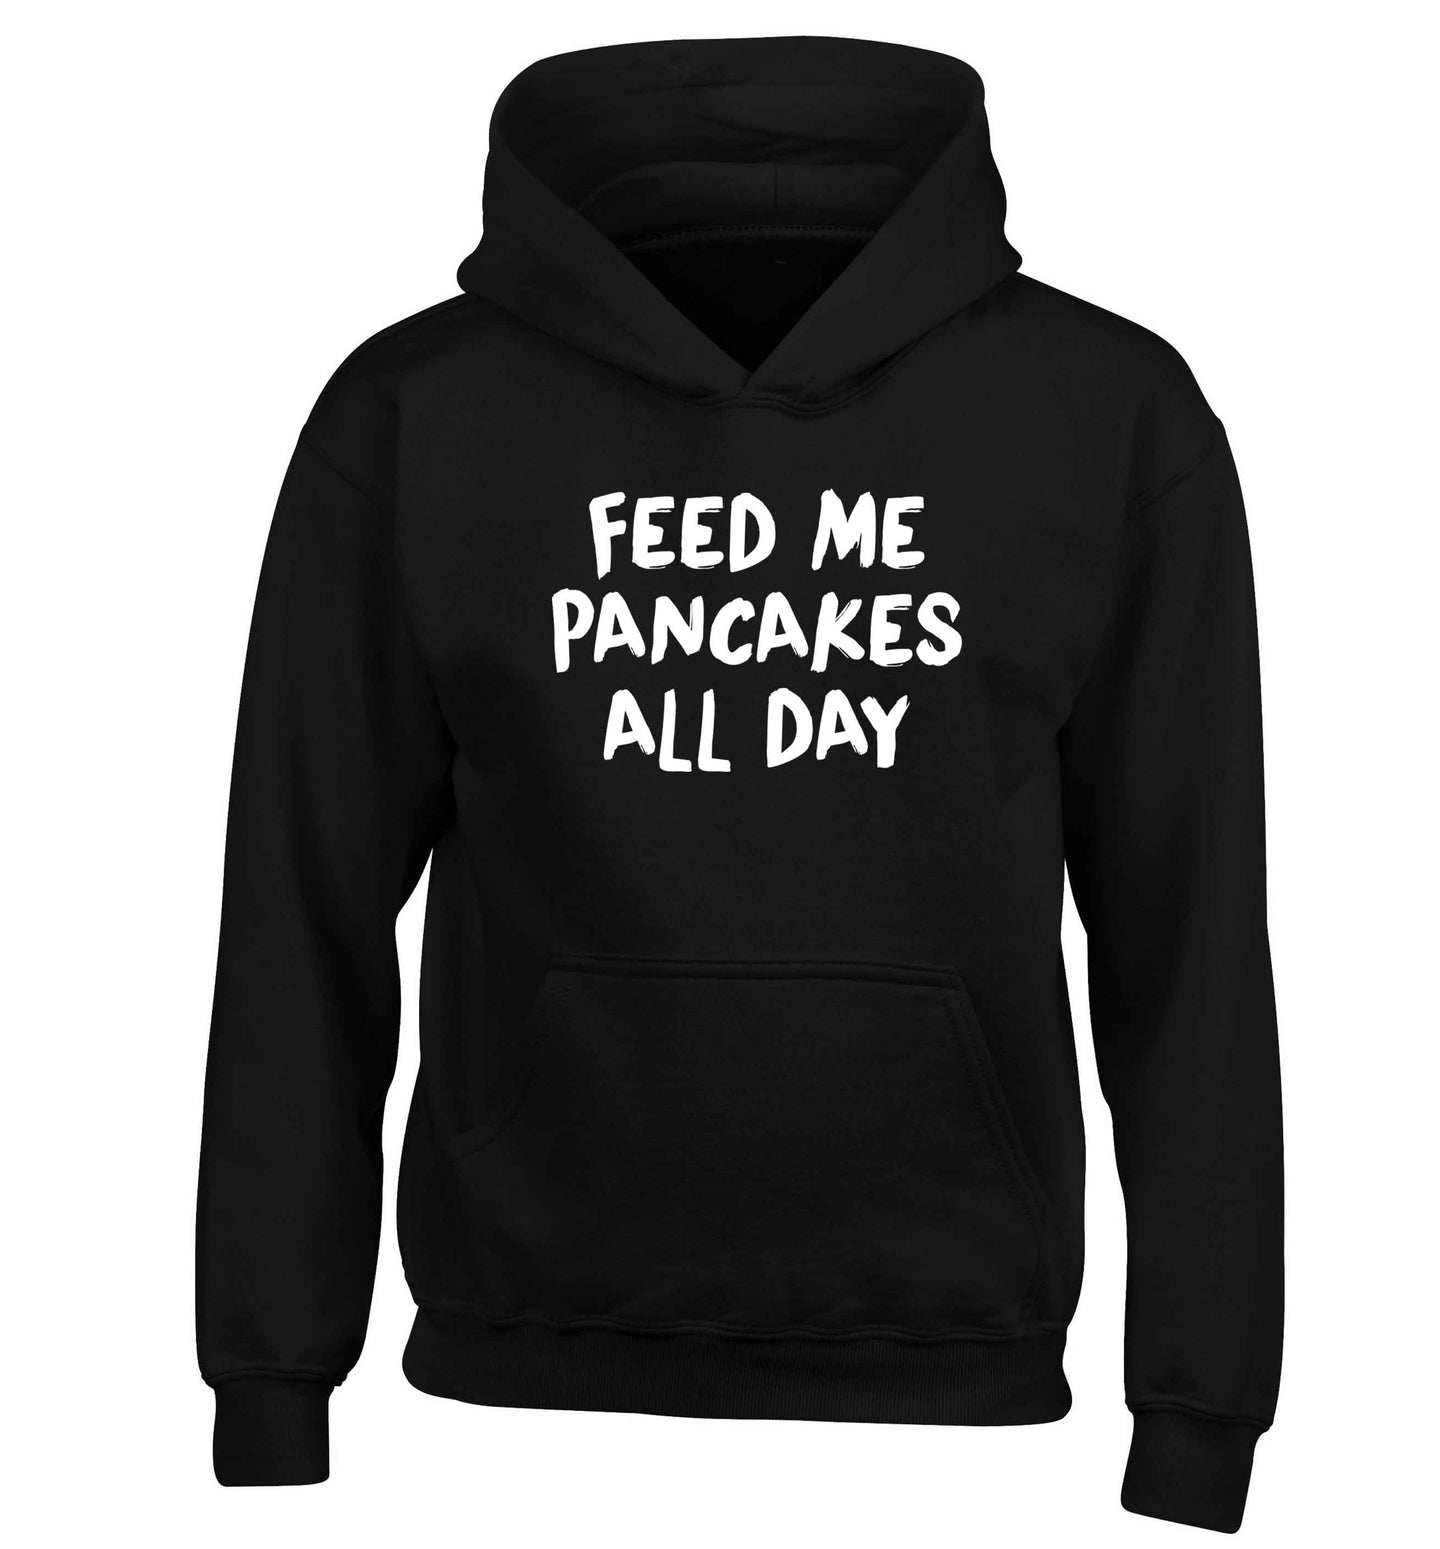 Feed me pancakes all day children's black hoodie 12-13 Years